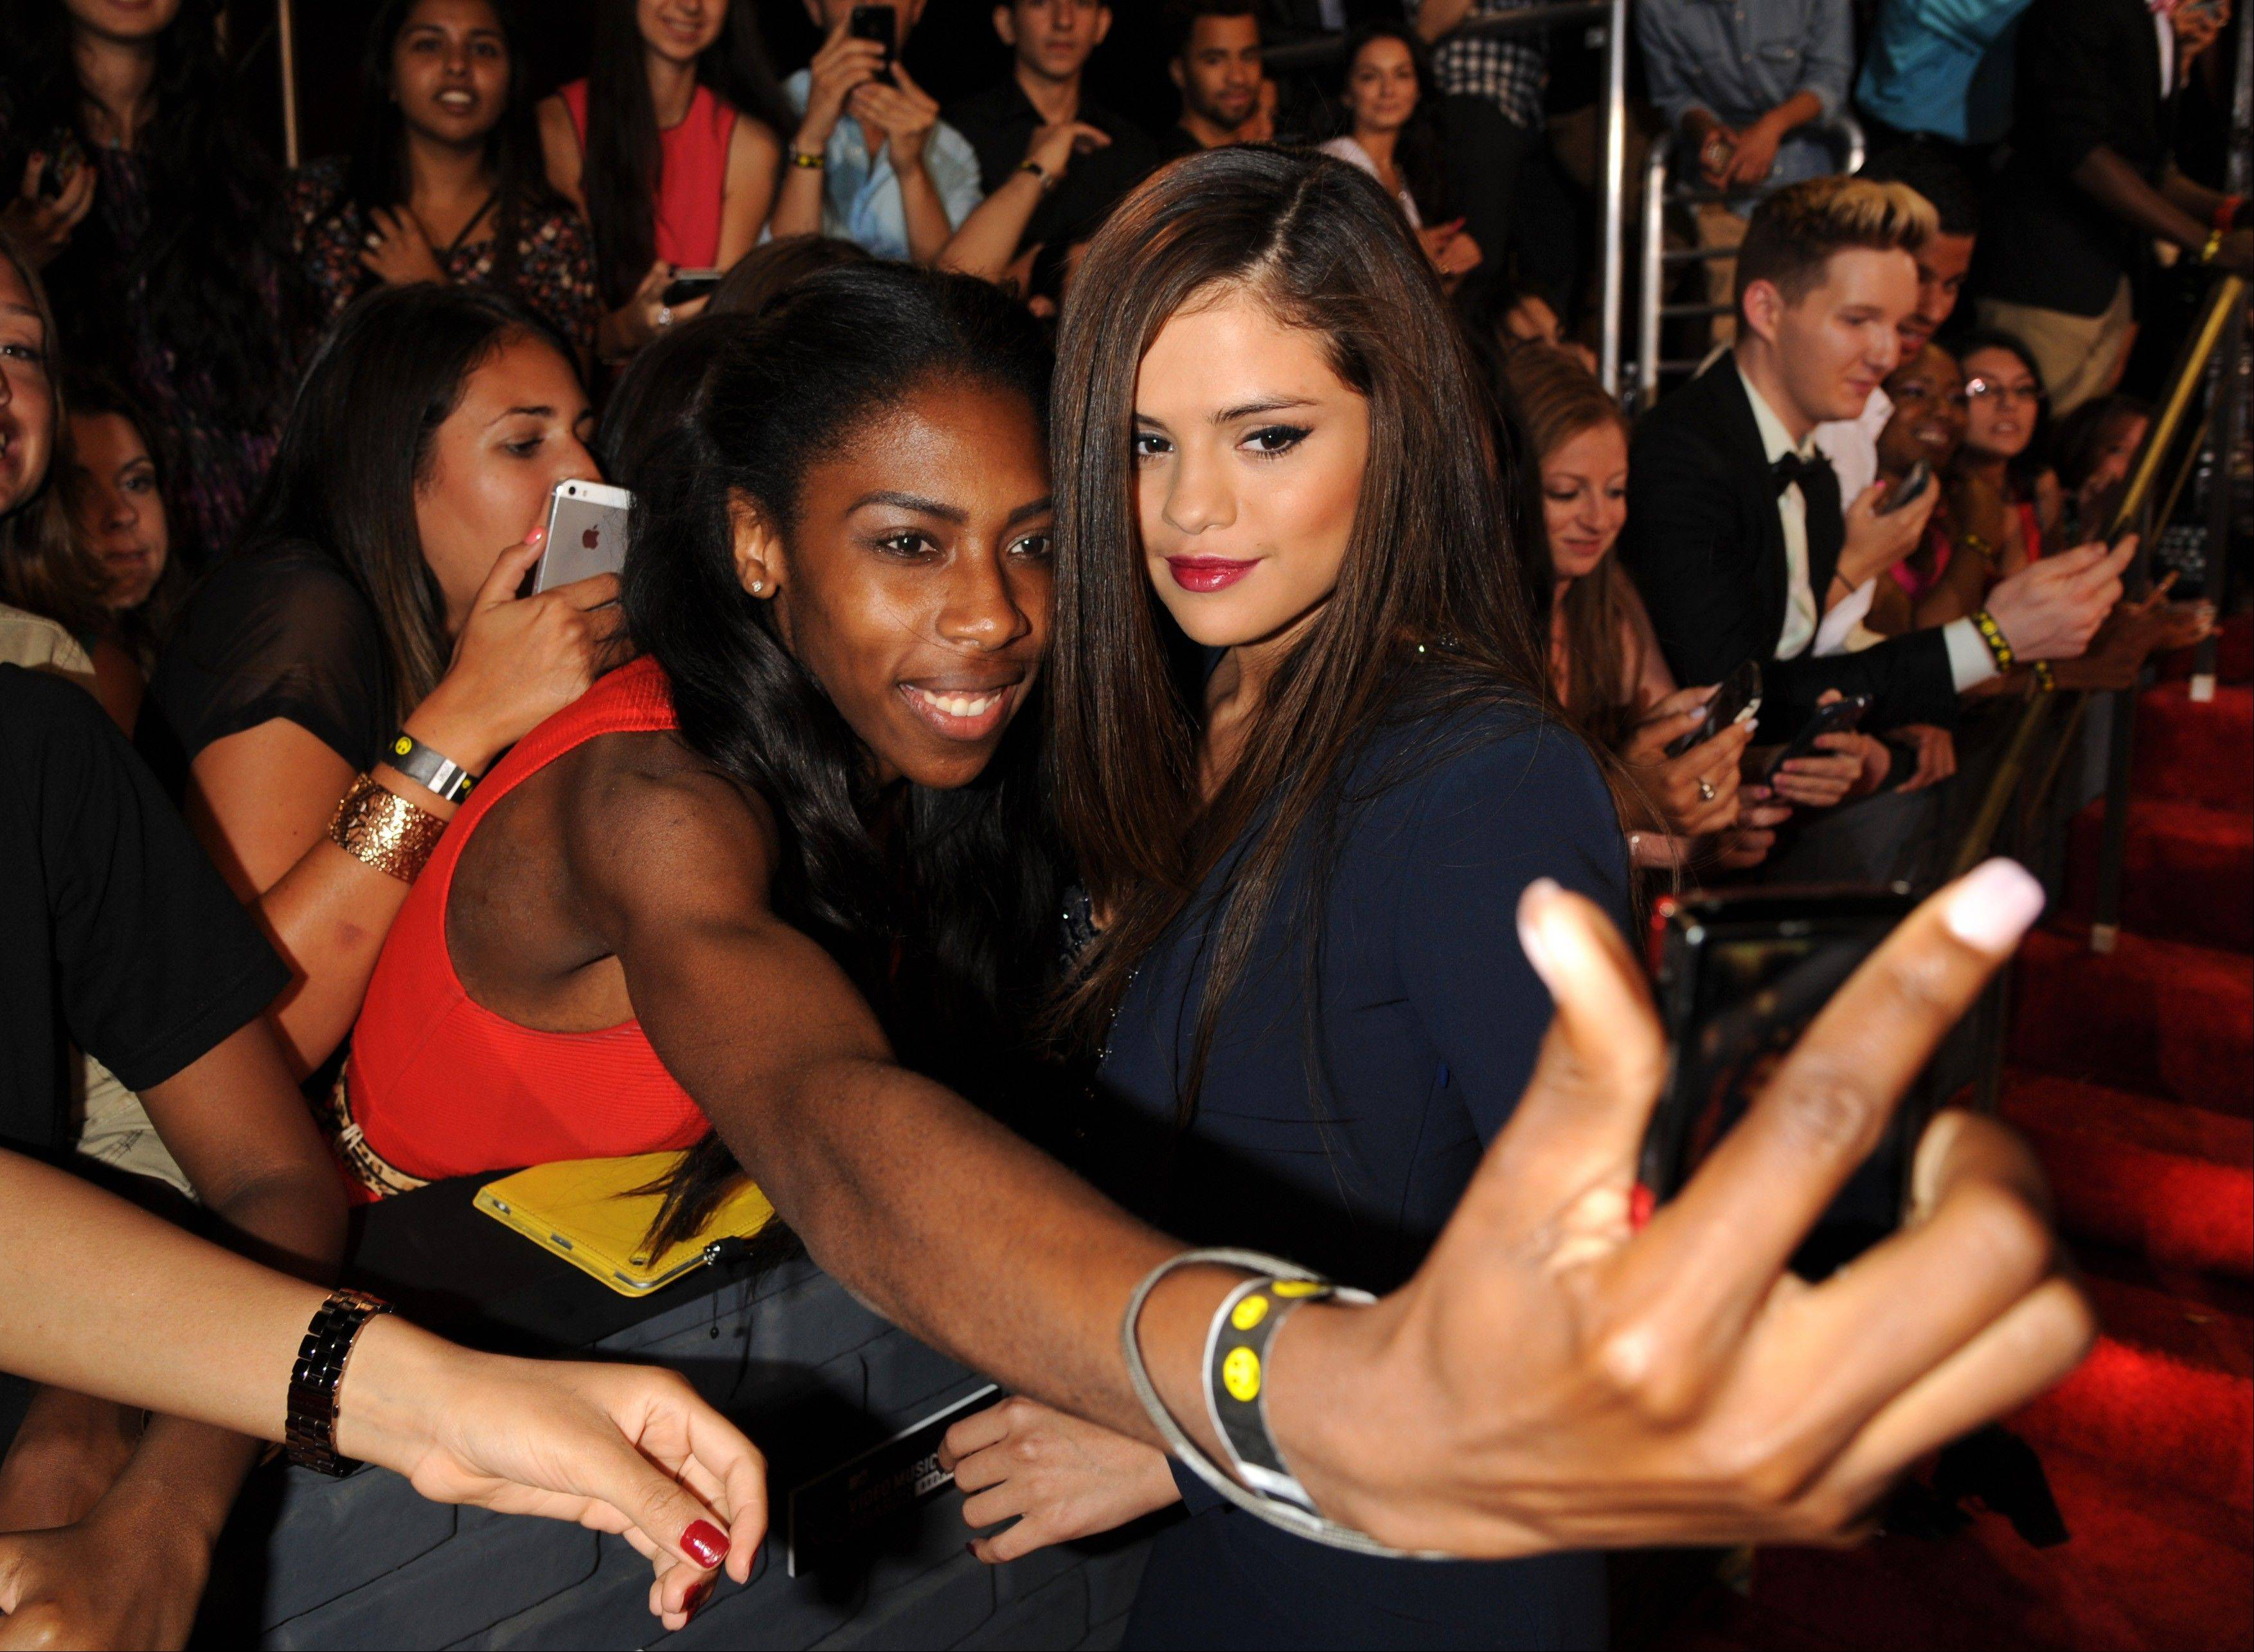 Selena Gomez poses with a fan at the MTV Video Music Awards on Sunday, Aug. 25, 2013, at the Barclays Center in the Brooklyn borough of New York